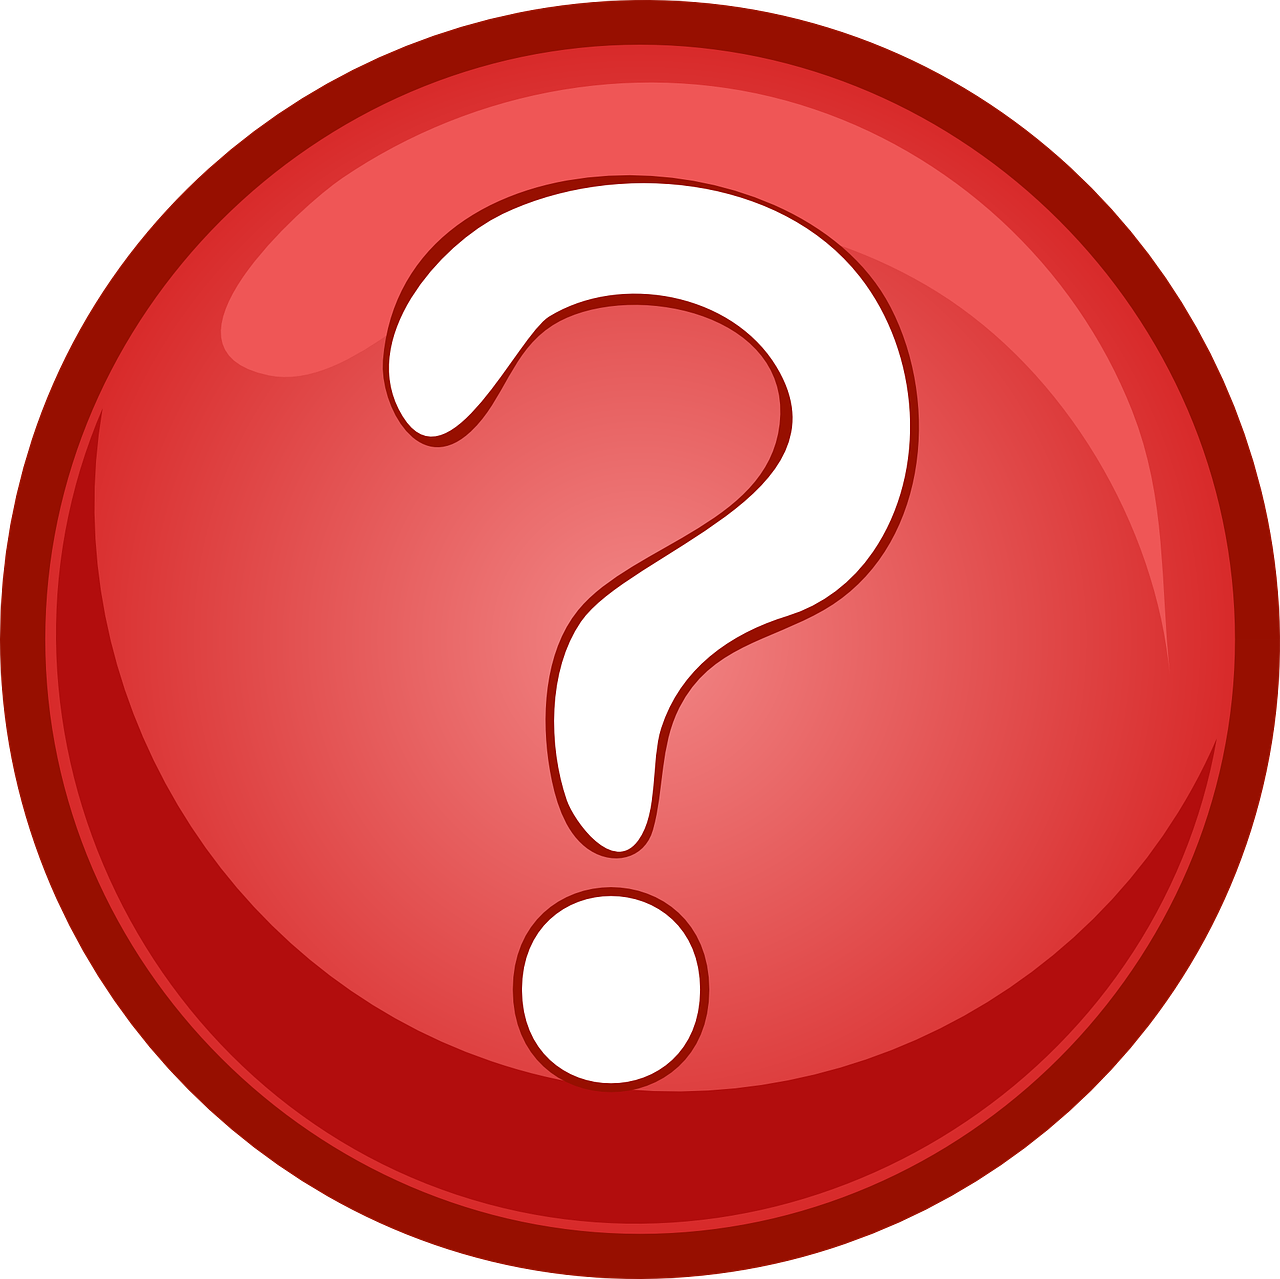 question mark button free photo